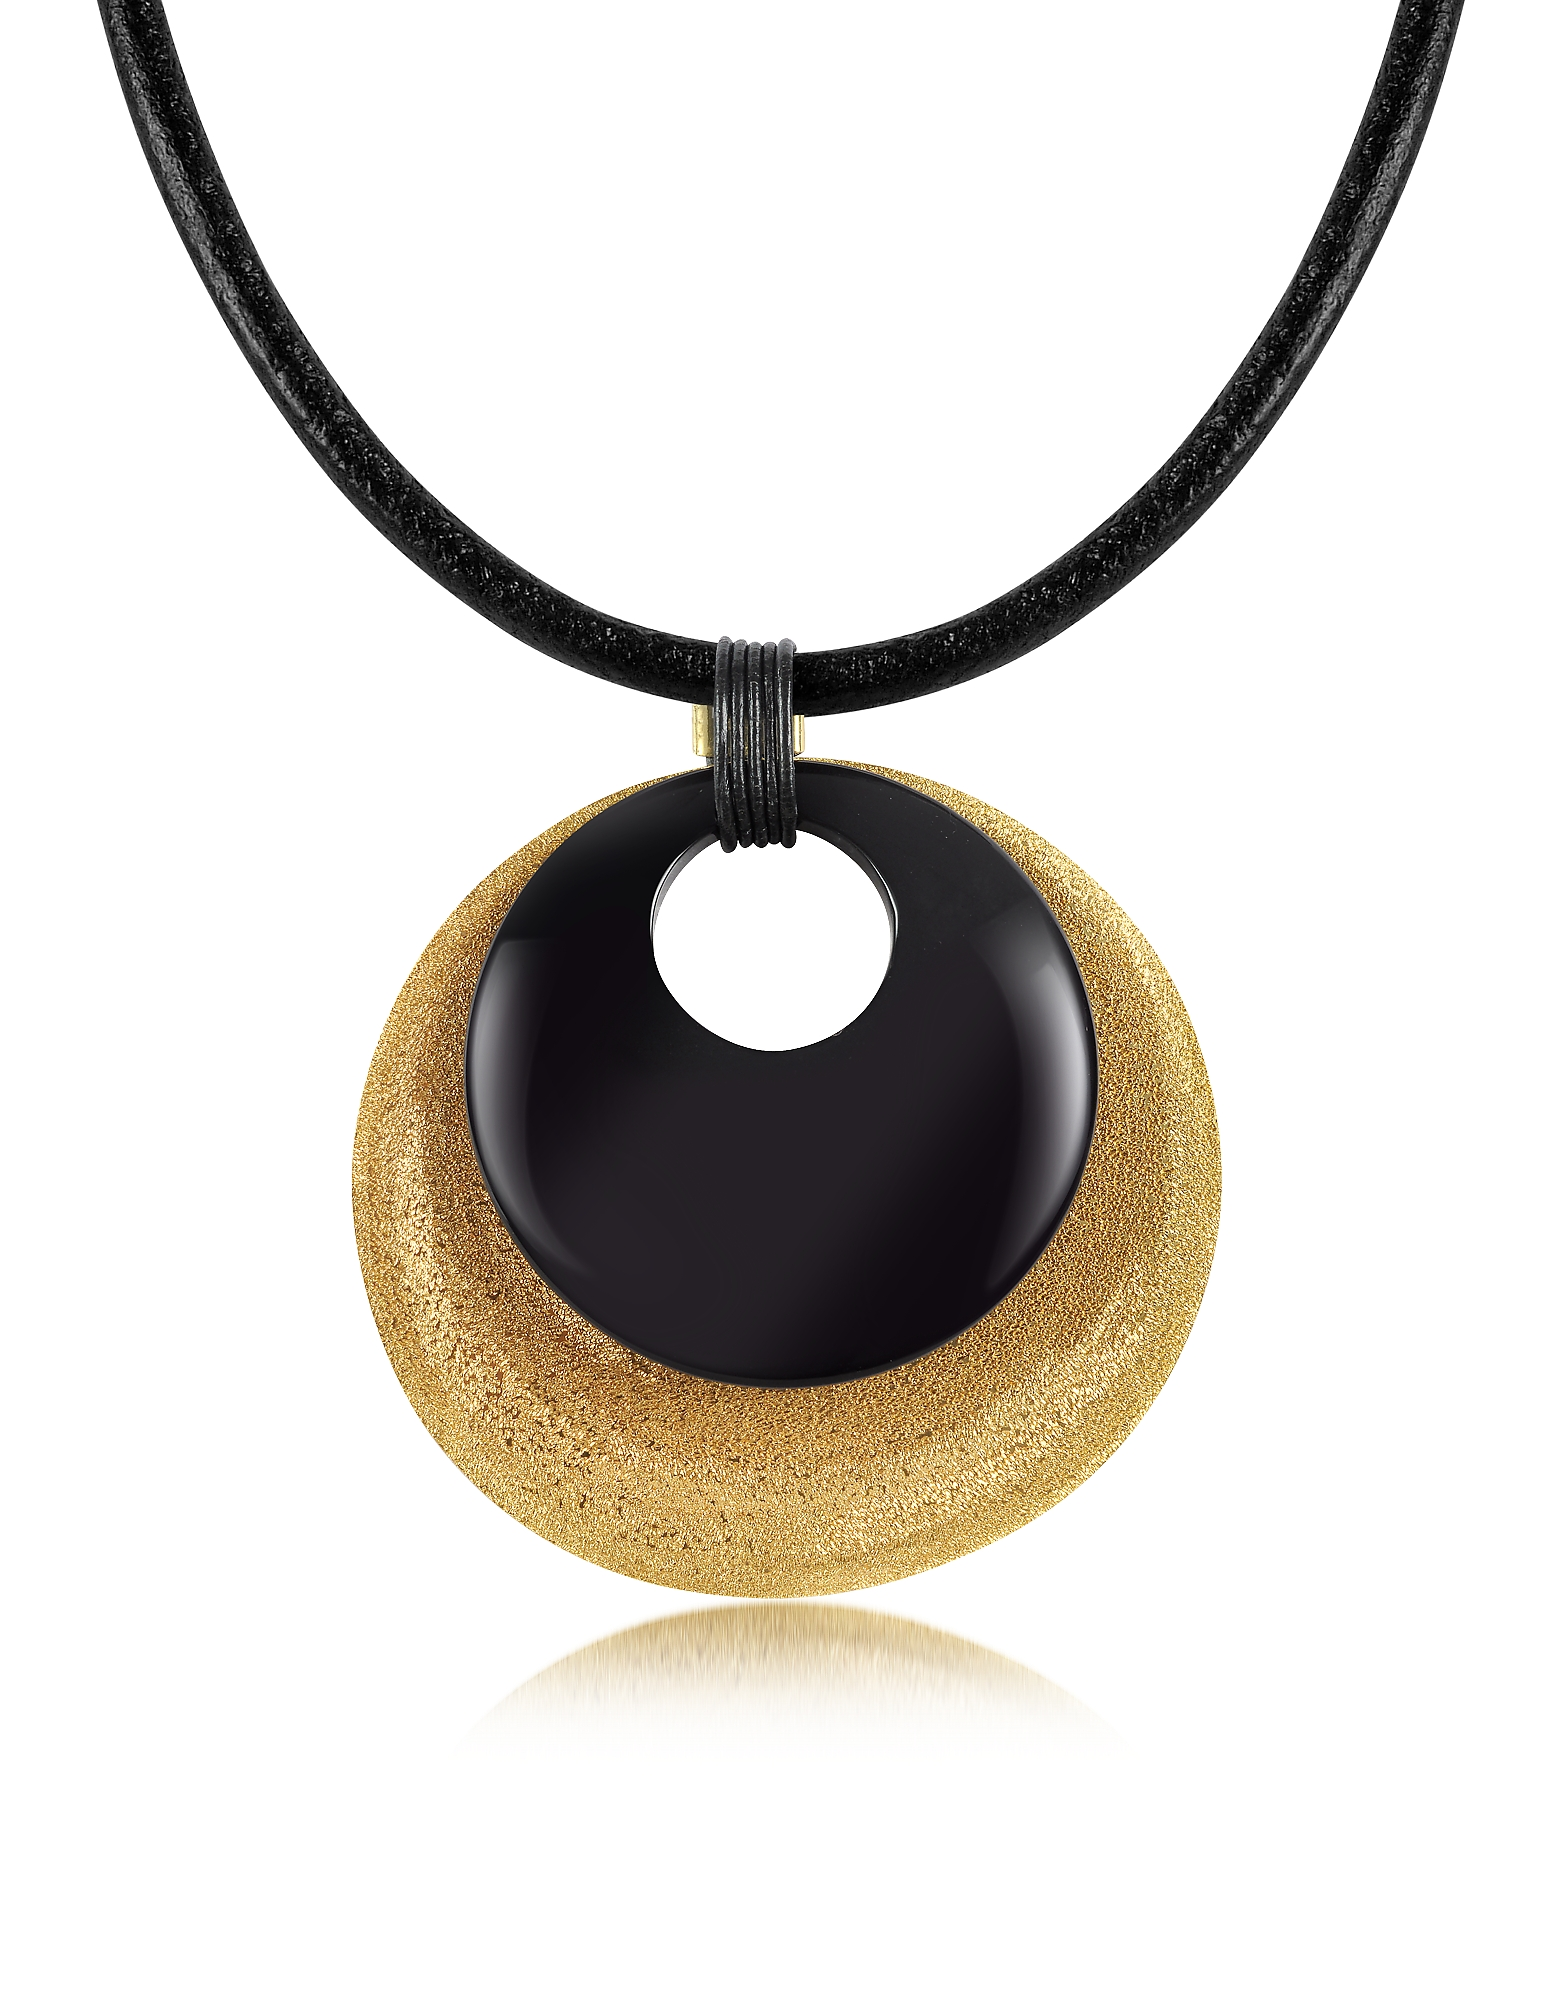 Stefano Patriarchi Necklaces, Etched Golden Silver and Onyx Round Pendant w/Leather Lace